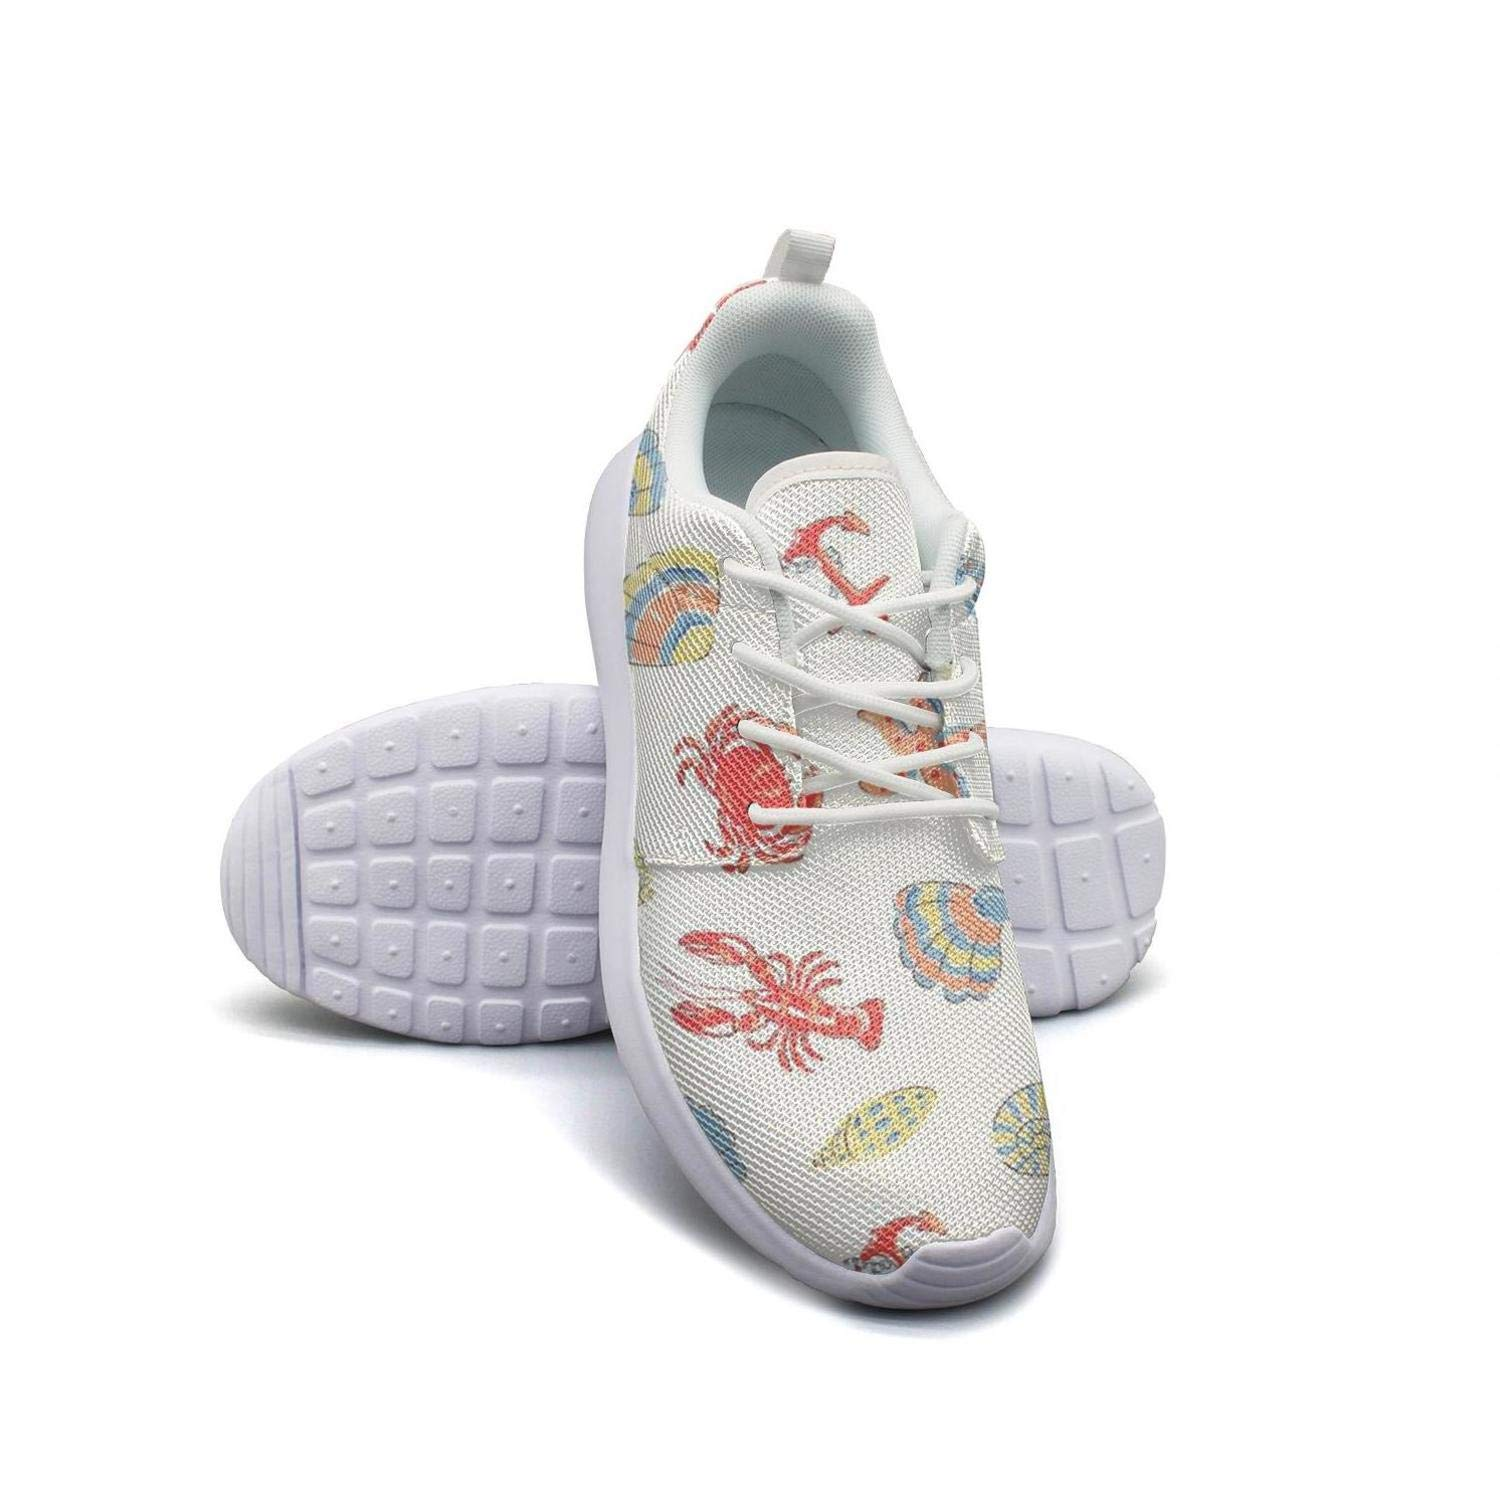 Whale Lighthouse Anchor Pink Gray Running Shoes Lightweight Men Sneaker Walking Shock Absorbing Shoes